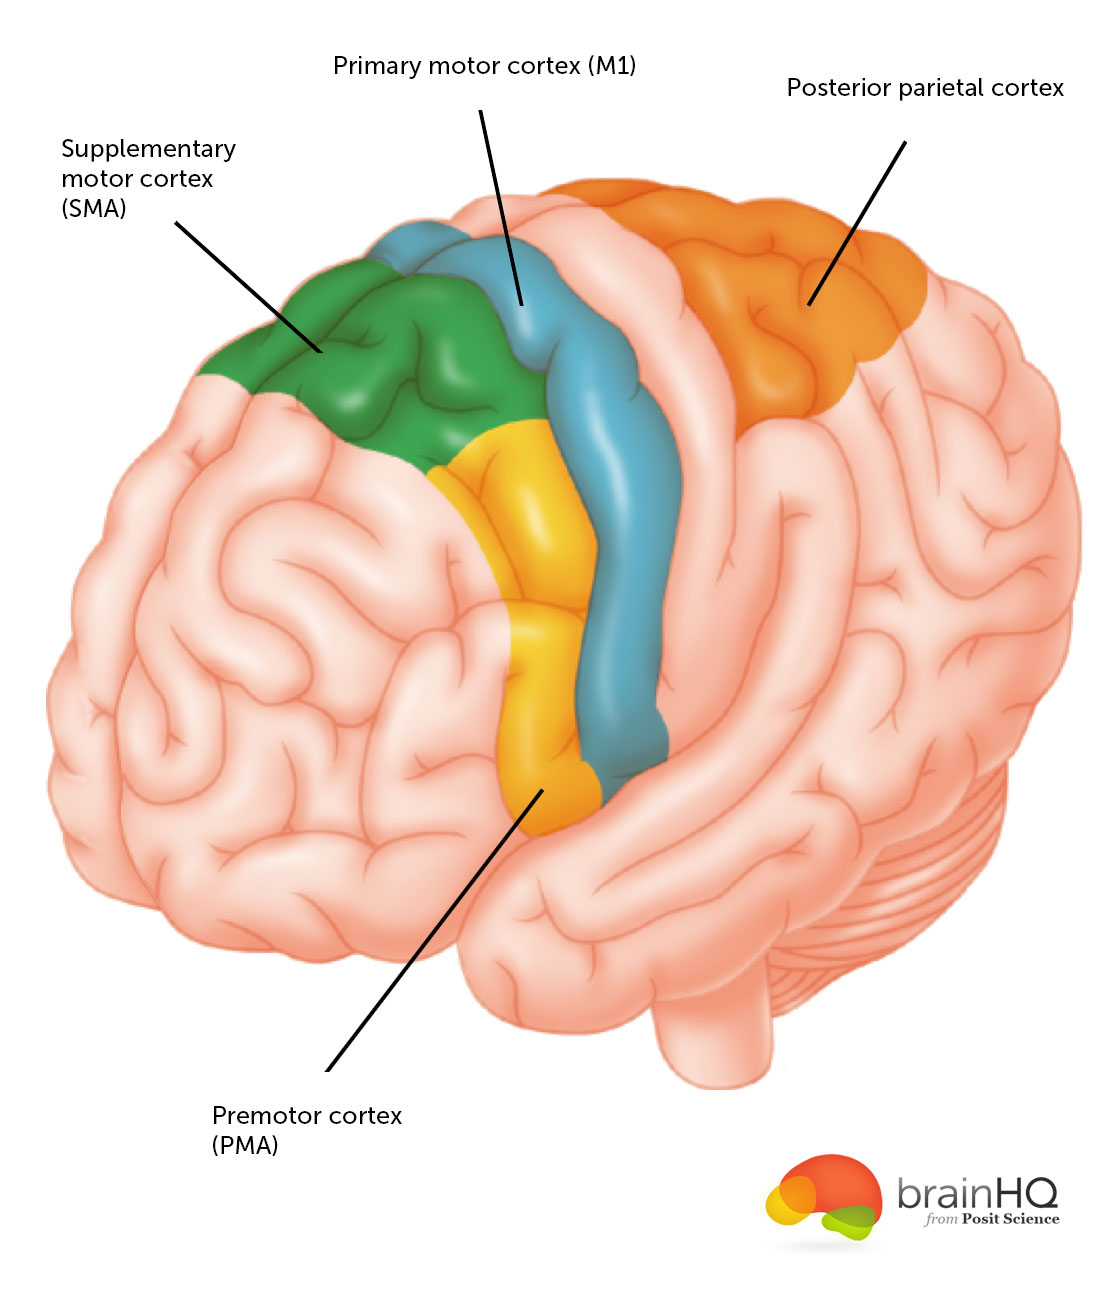 Motor cortex brainhq from posit science this diagram indicates where the supplementary motor cortex primary motor cortex posterior parietal cortex and premotor cortex are located ccuart Gallery